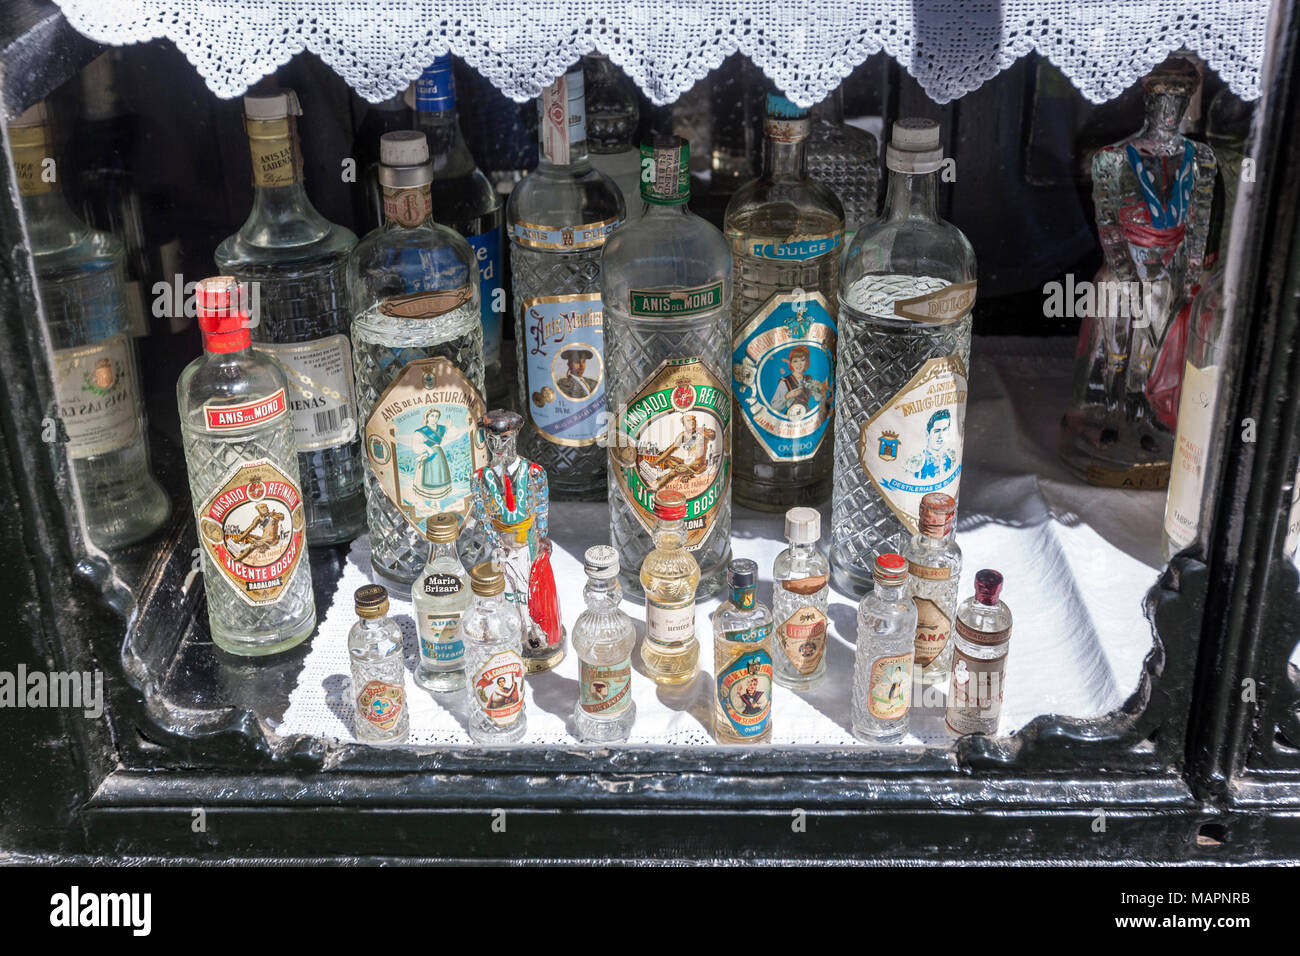 showcase-with-old-anisette-bottles-in-ho